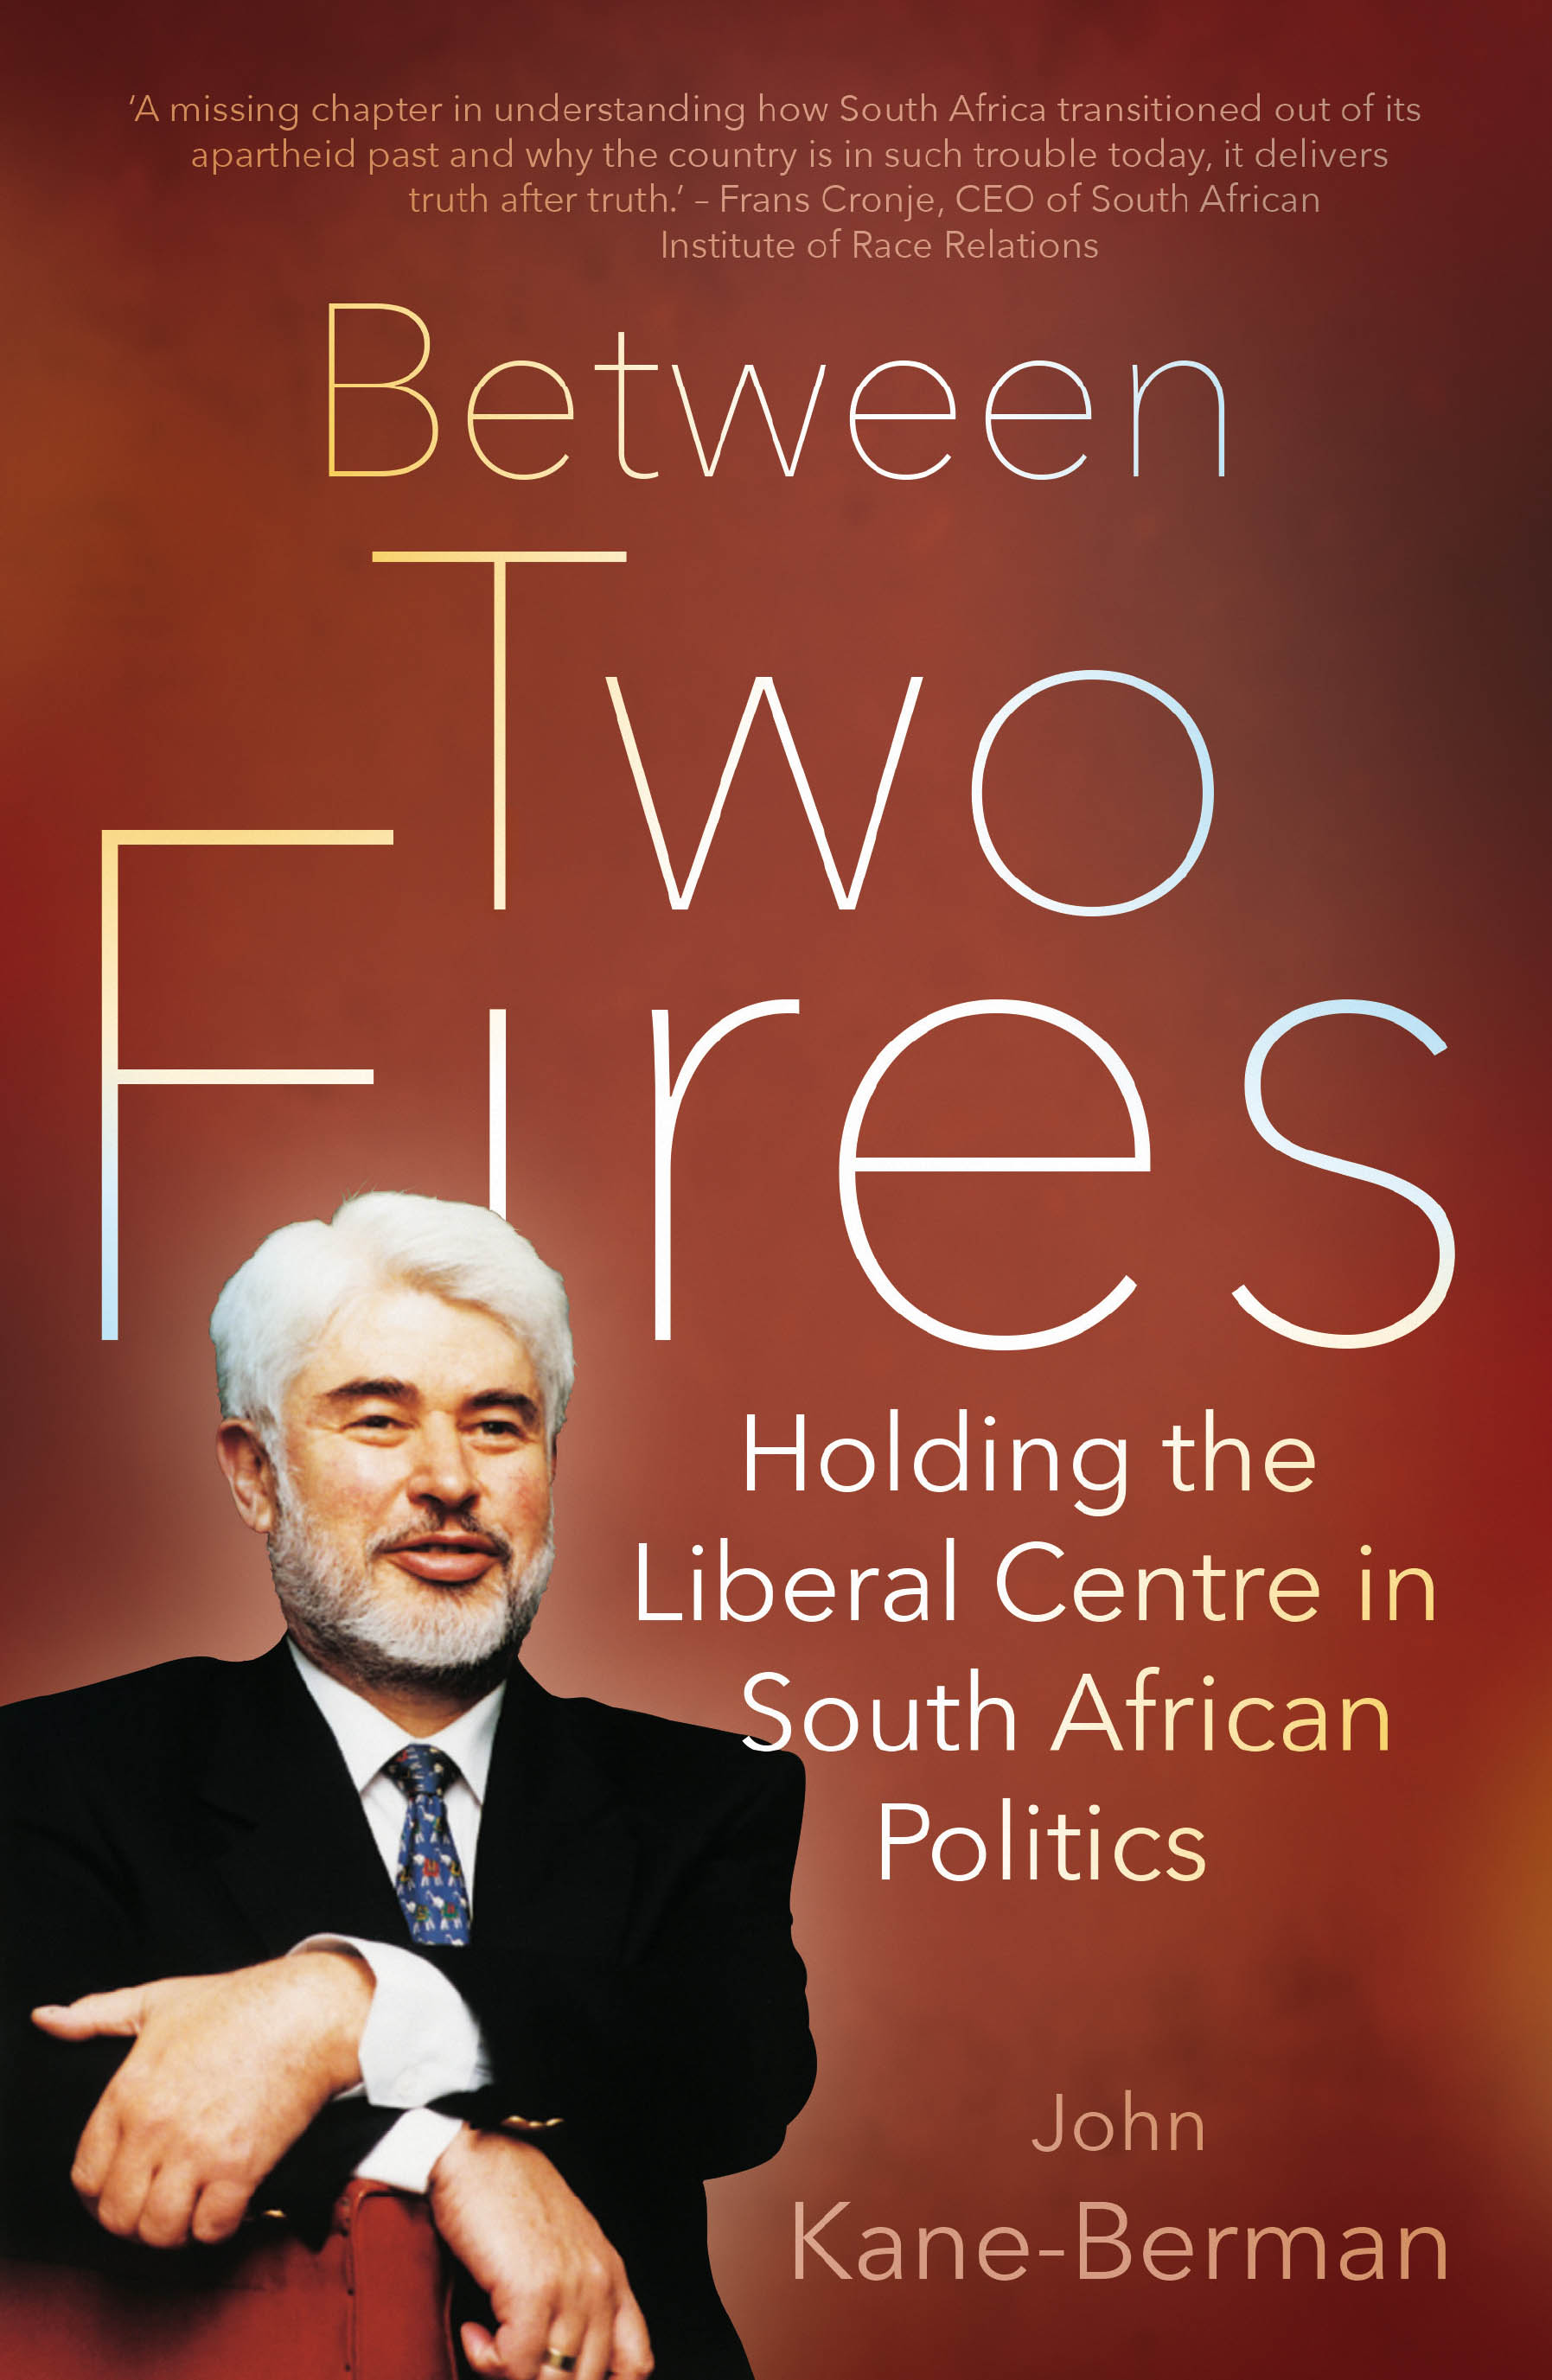 Between Two Fires by John Kane-Berman